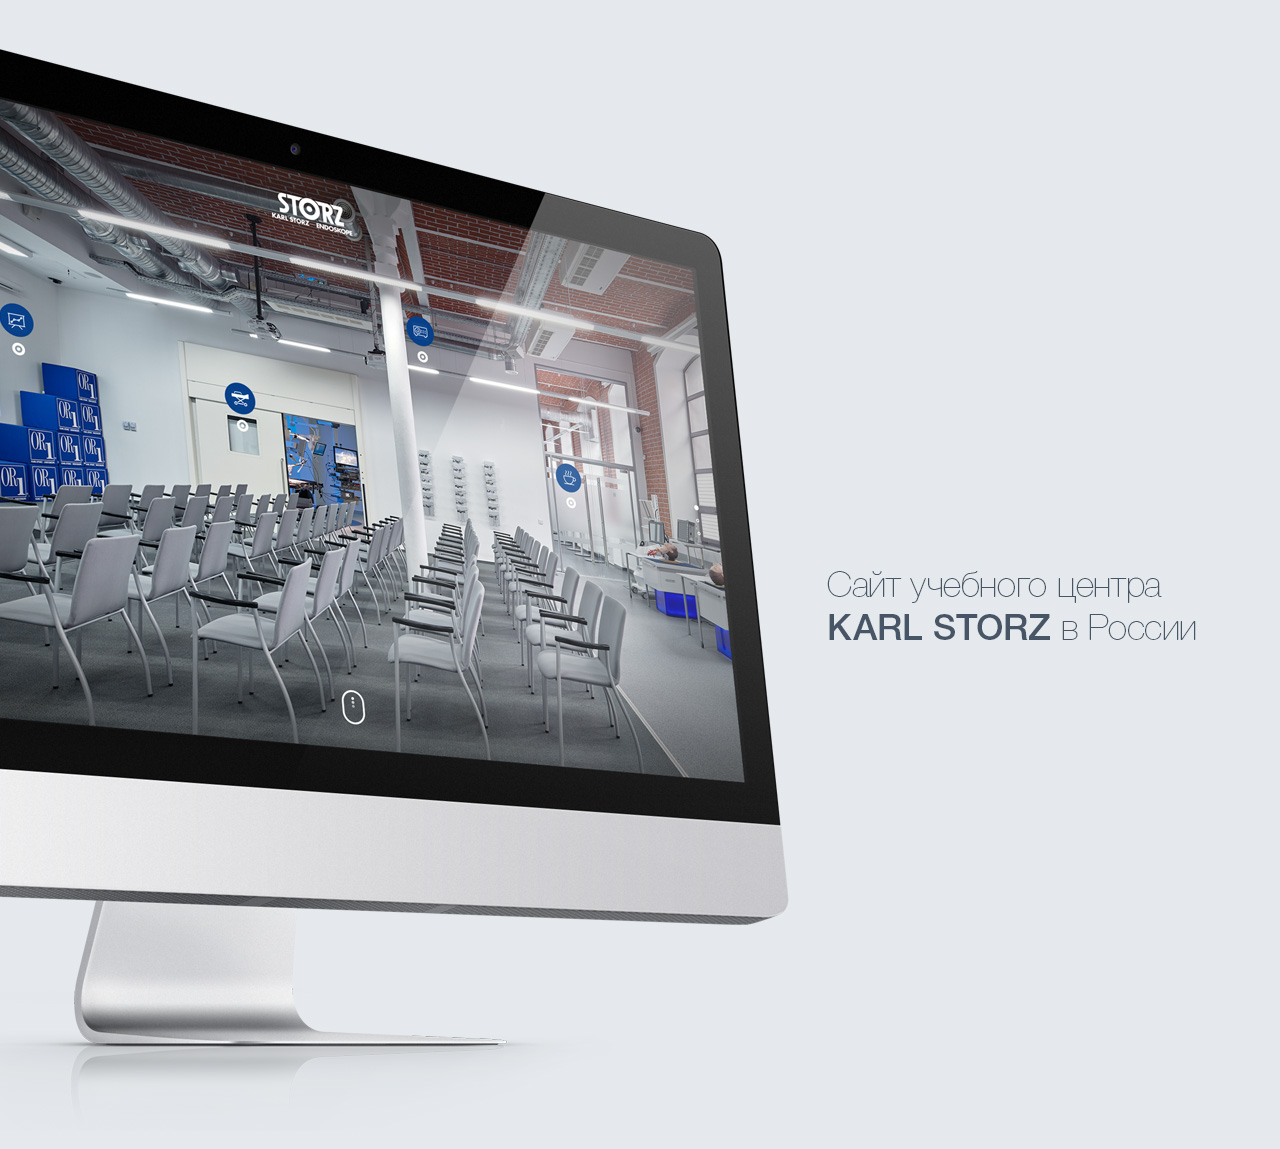 KARL STORZ_1 © No Logo Studio